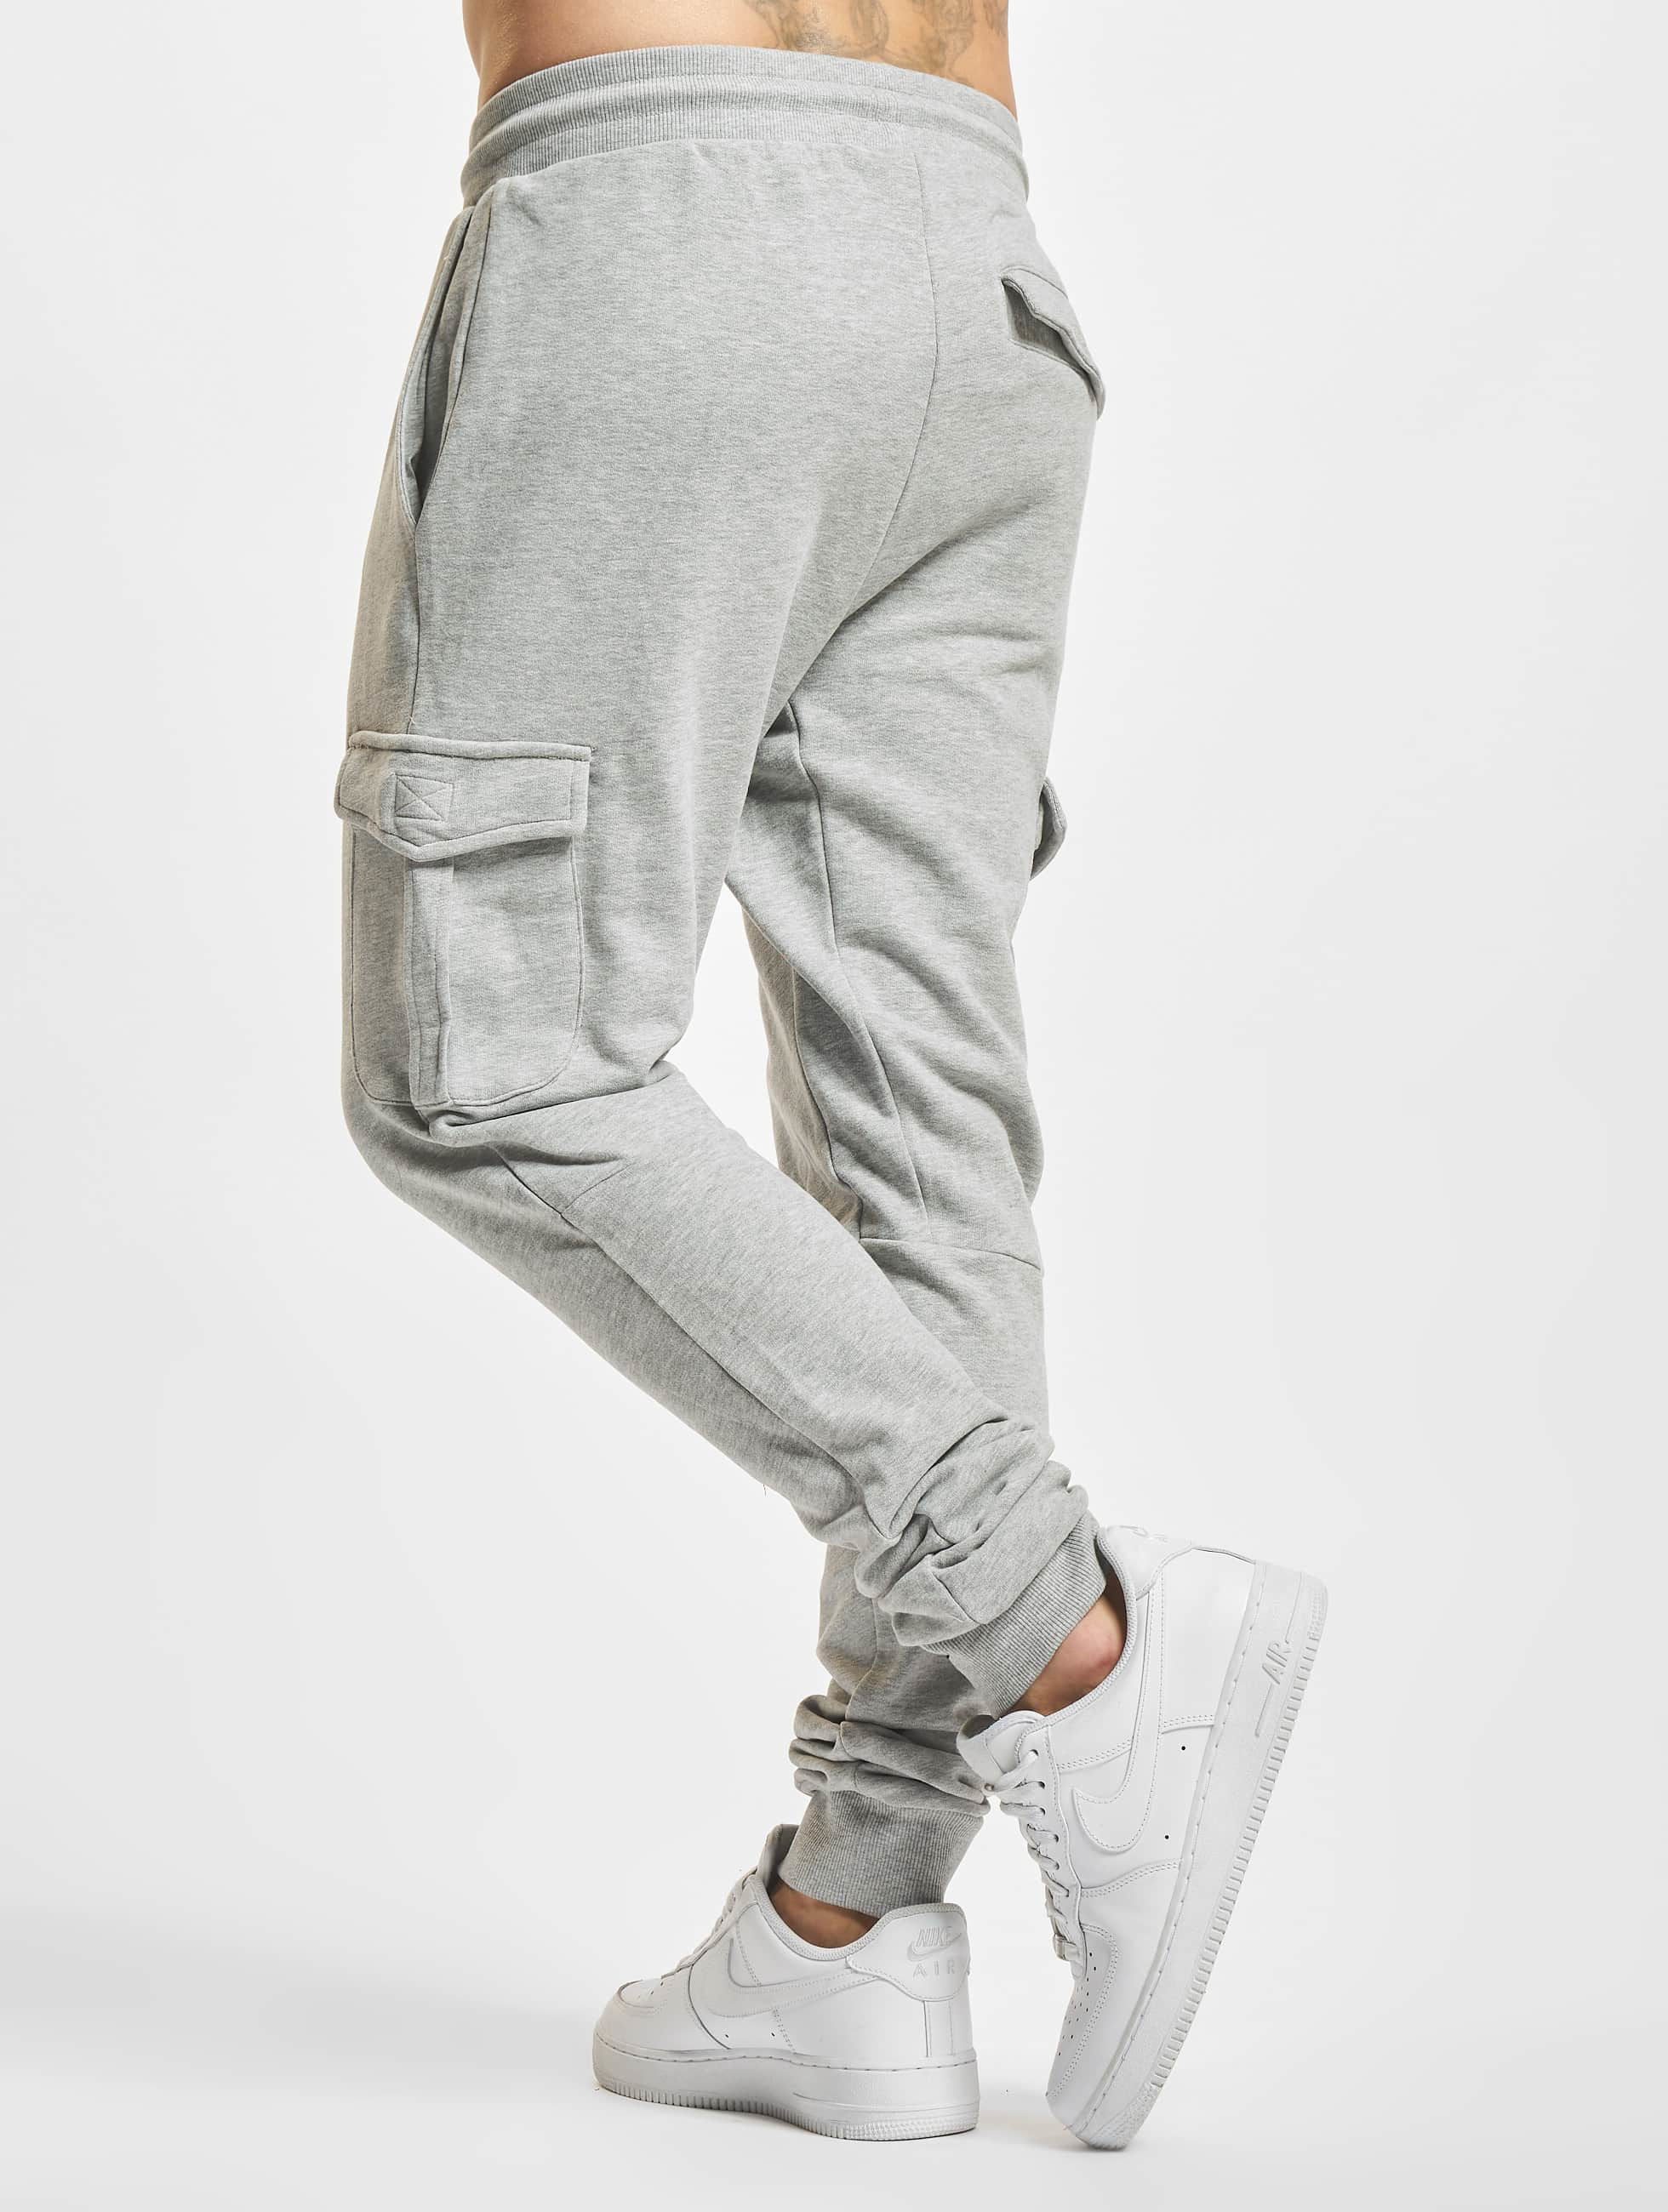 Urban Classics Spodnie do joggingu Fitted Cargo szary